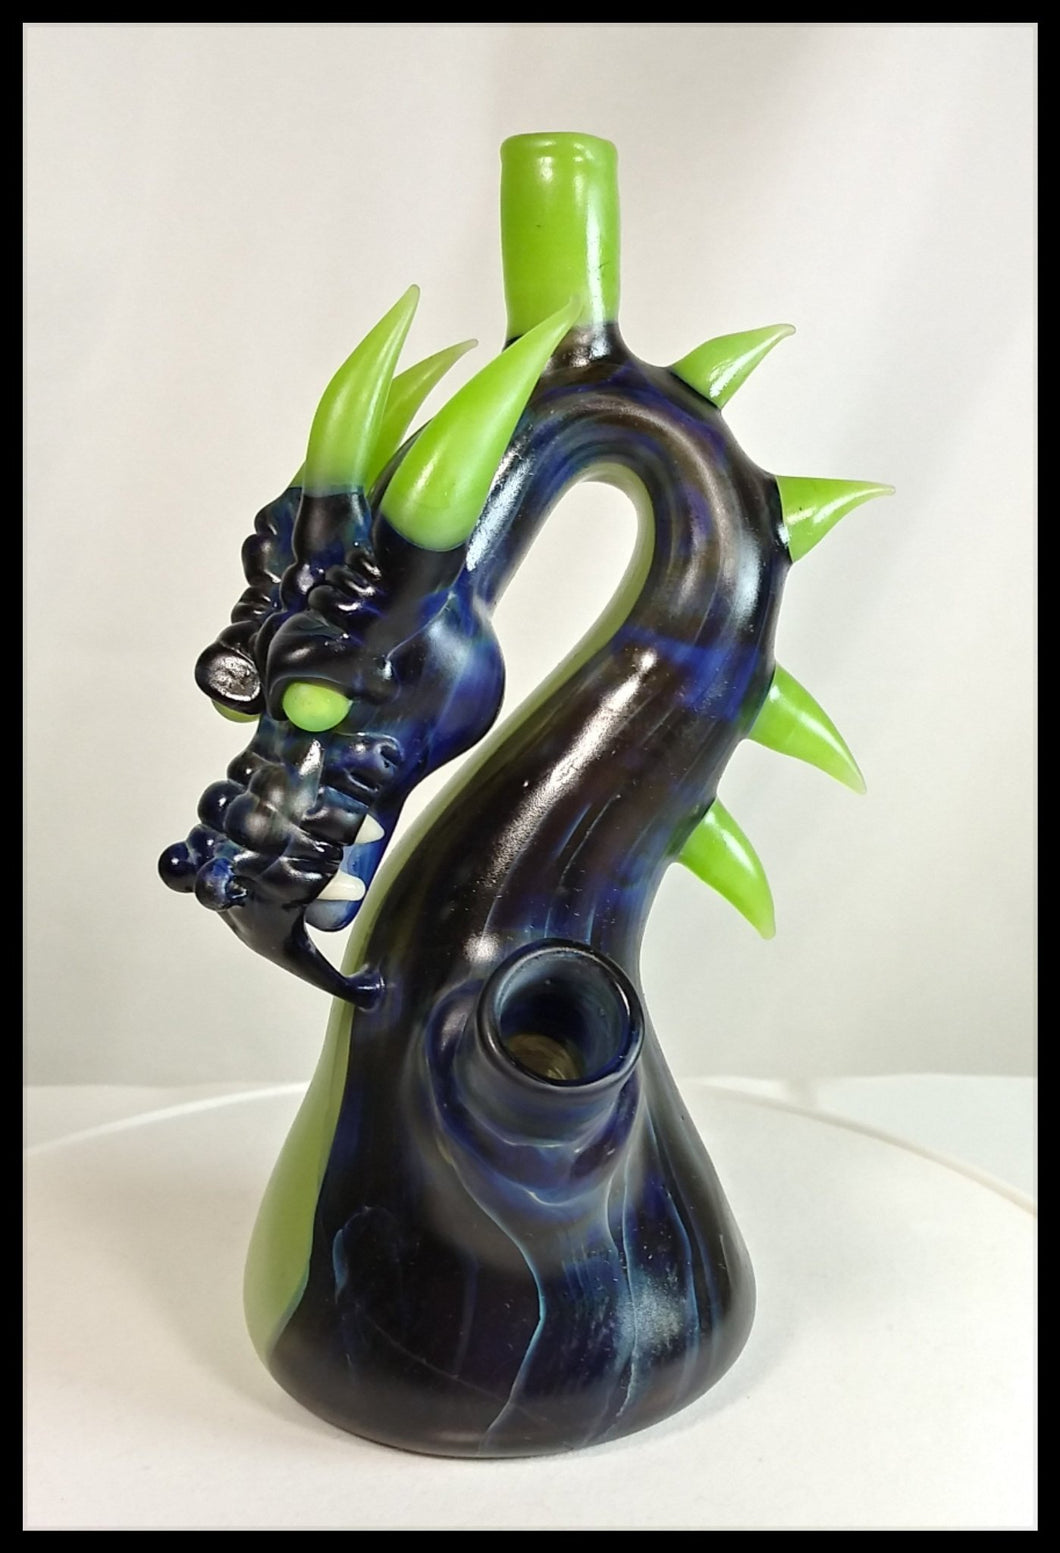 Tony Kazy Glass - Dragon Rig (sandblasted) - The Bong Czar Smokeshop & Heady Czar Glass Gallery